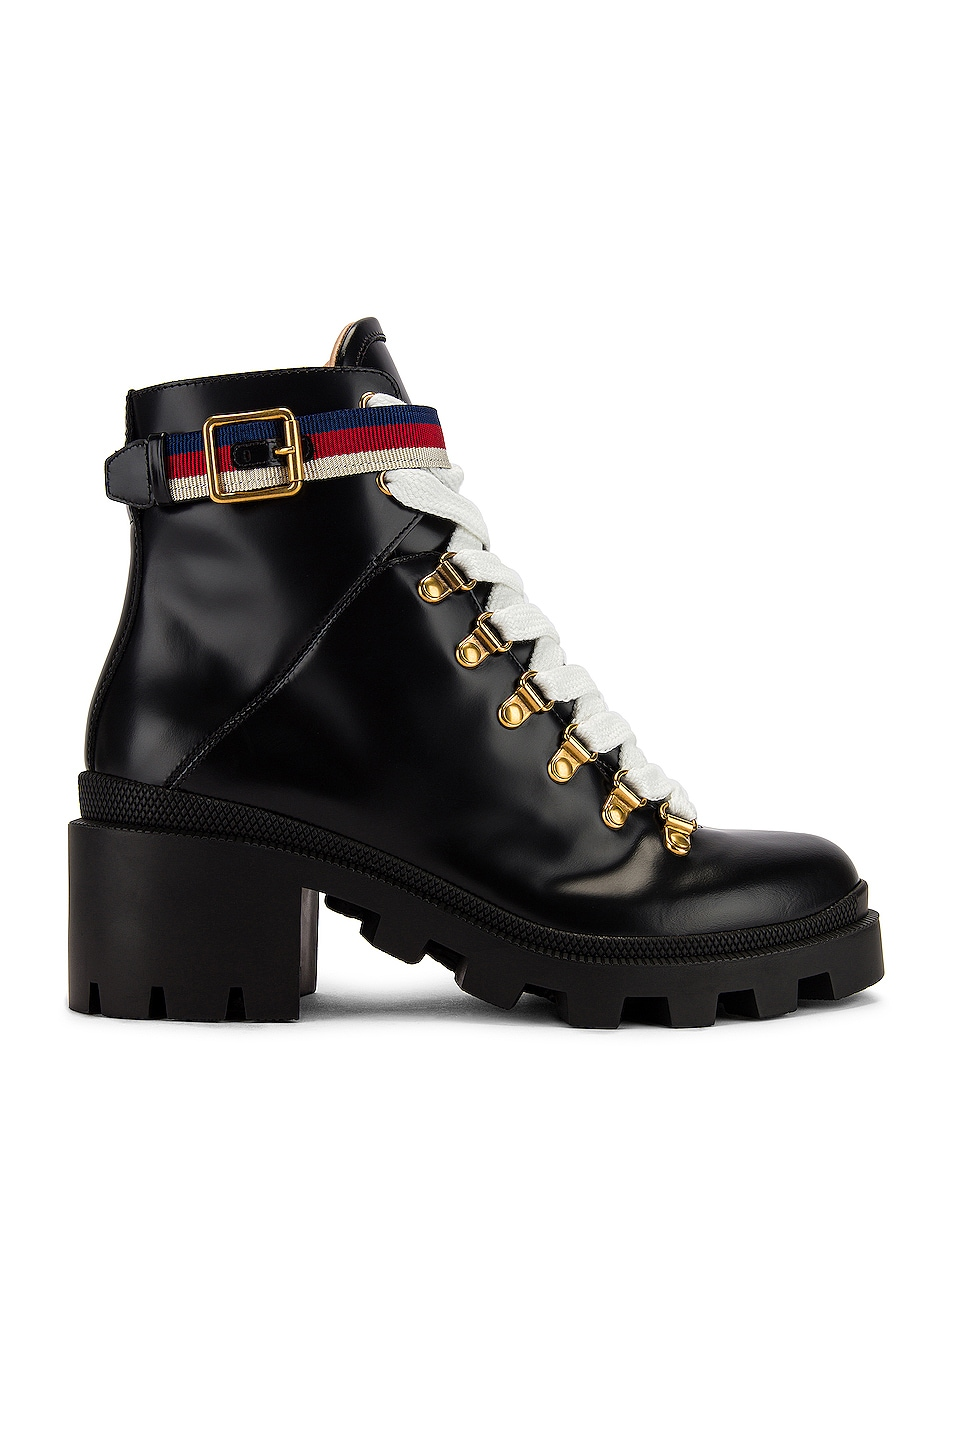 Image 1 of Gucci Trip Ankle Boots in Black & Red